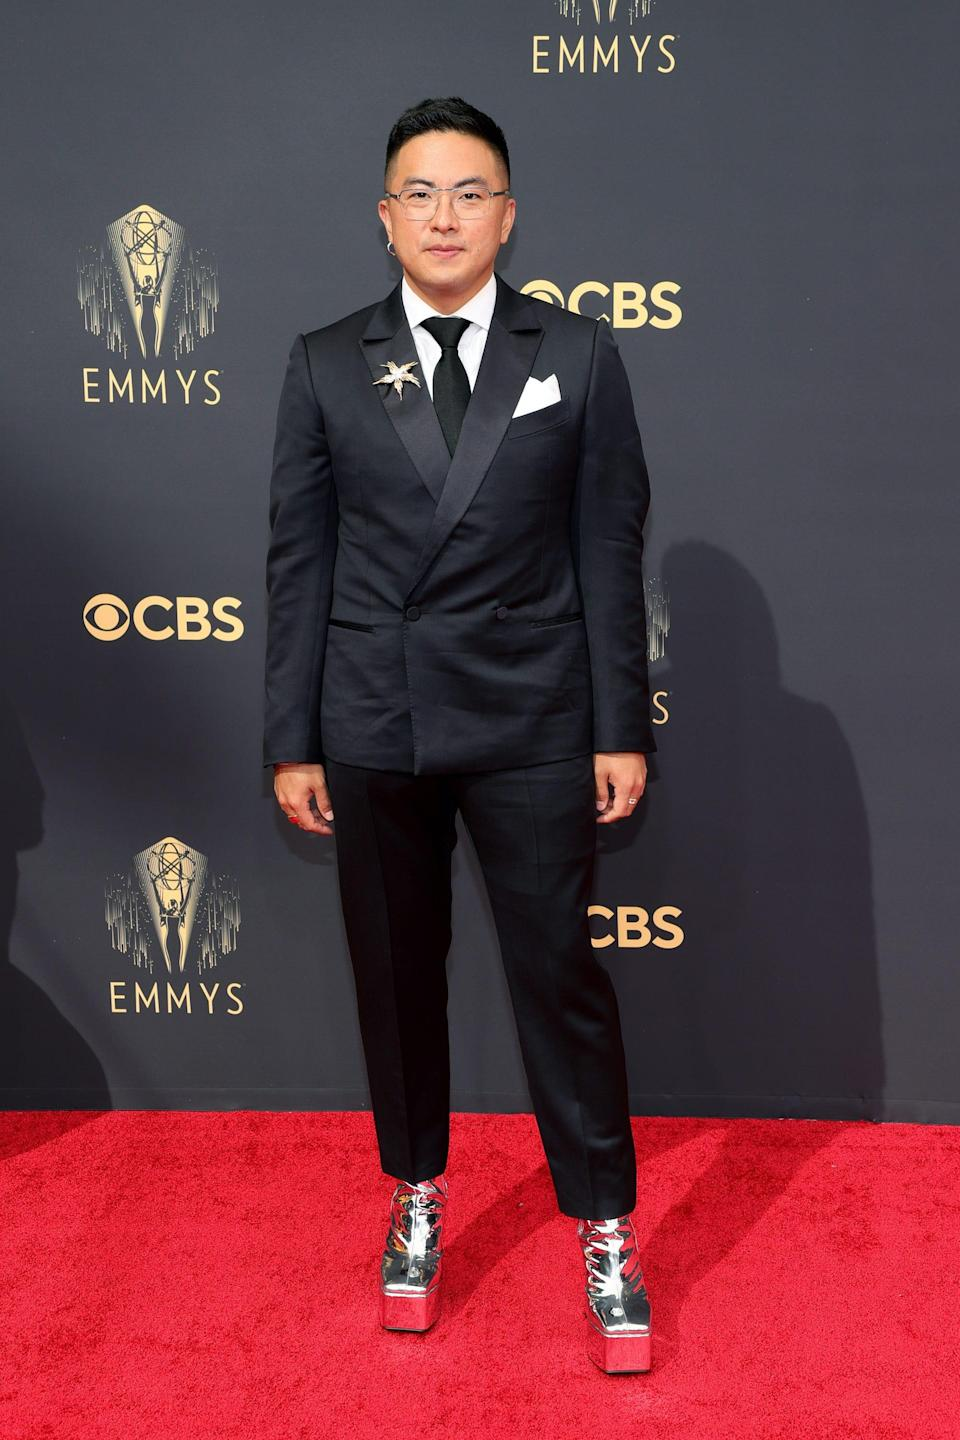 Bowen Yang wears a black suit and heels on the Emmys red carpet.